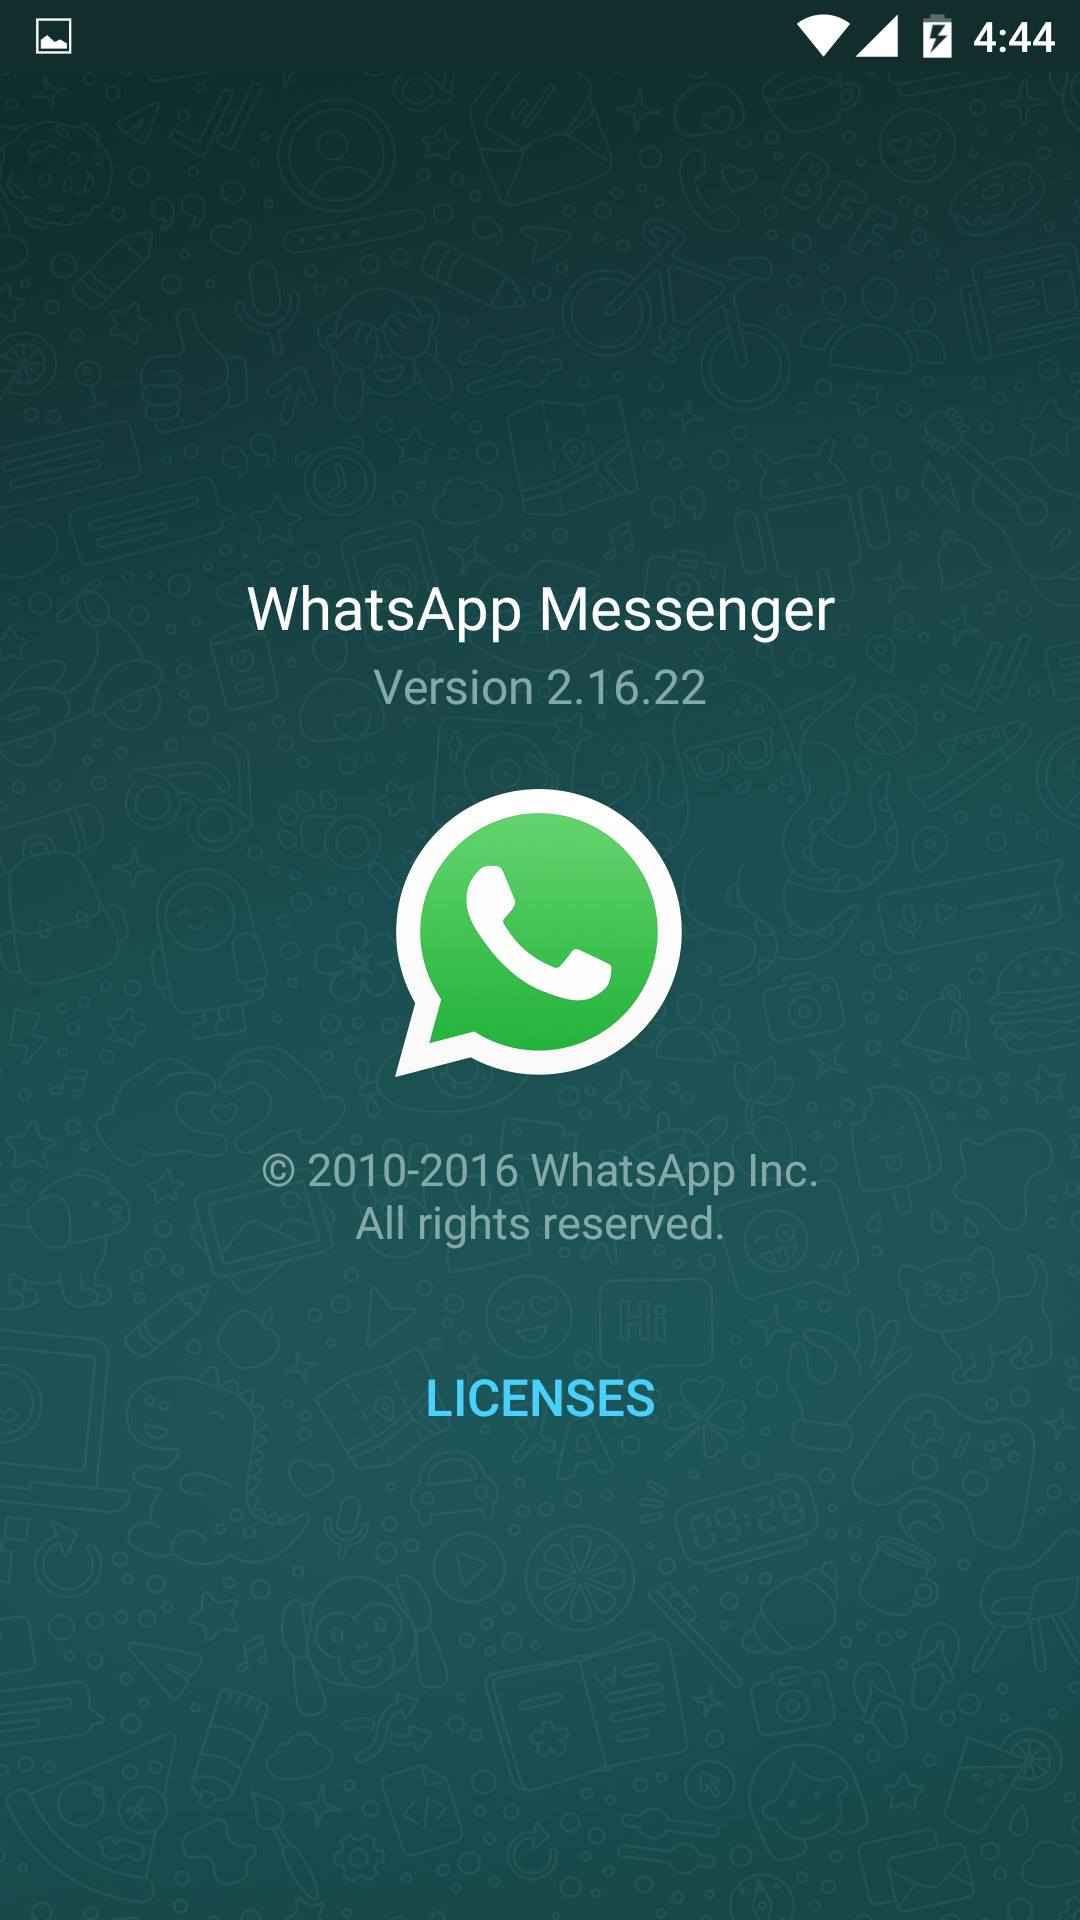 whatsapp messenger software for pc windows 7 free download